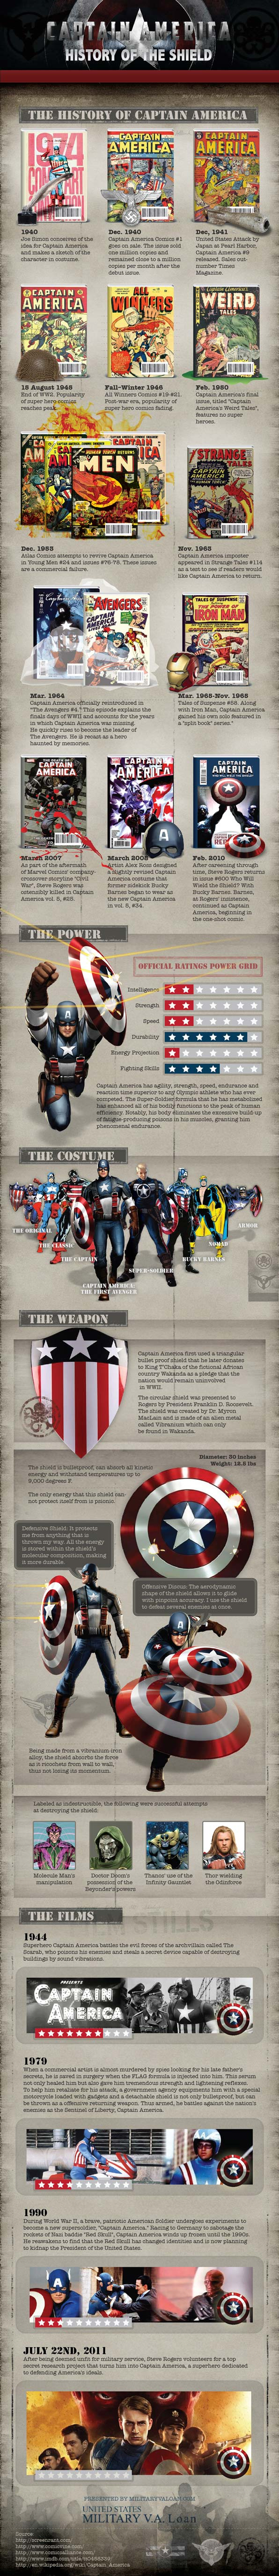 captain america infographic small The History of Captain America [Infographic]